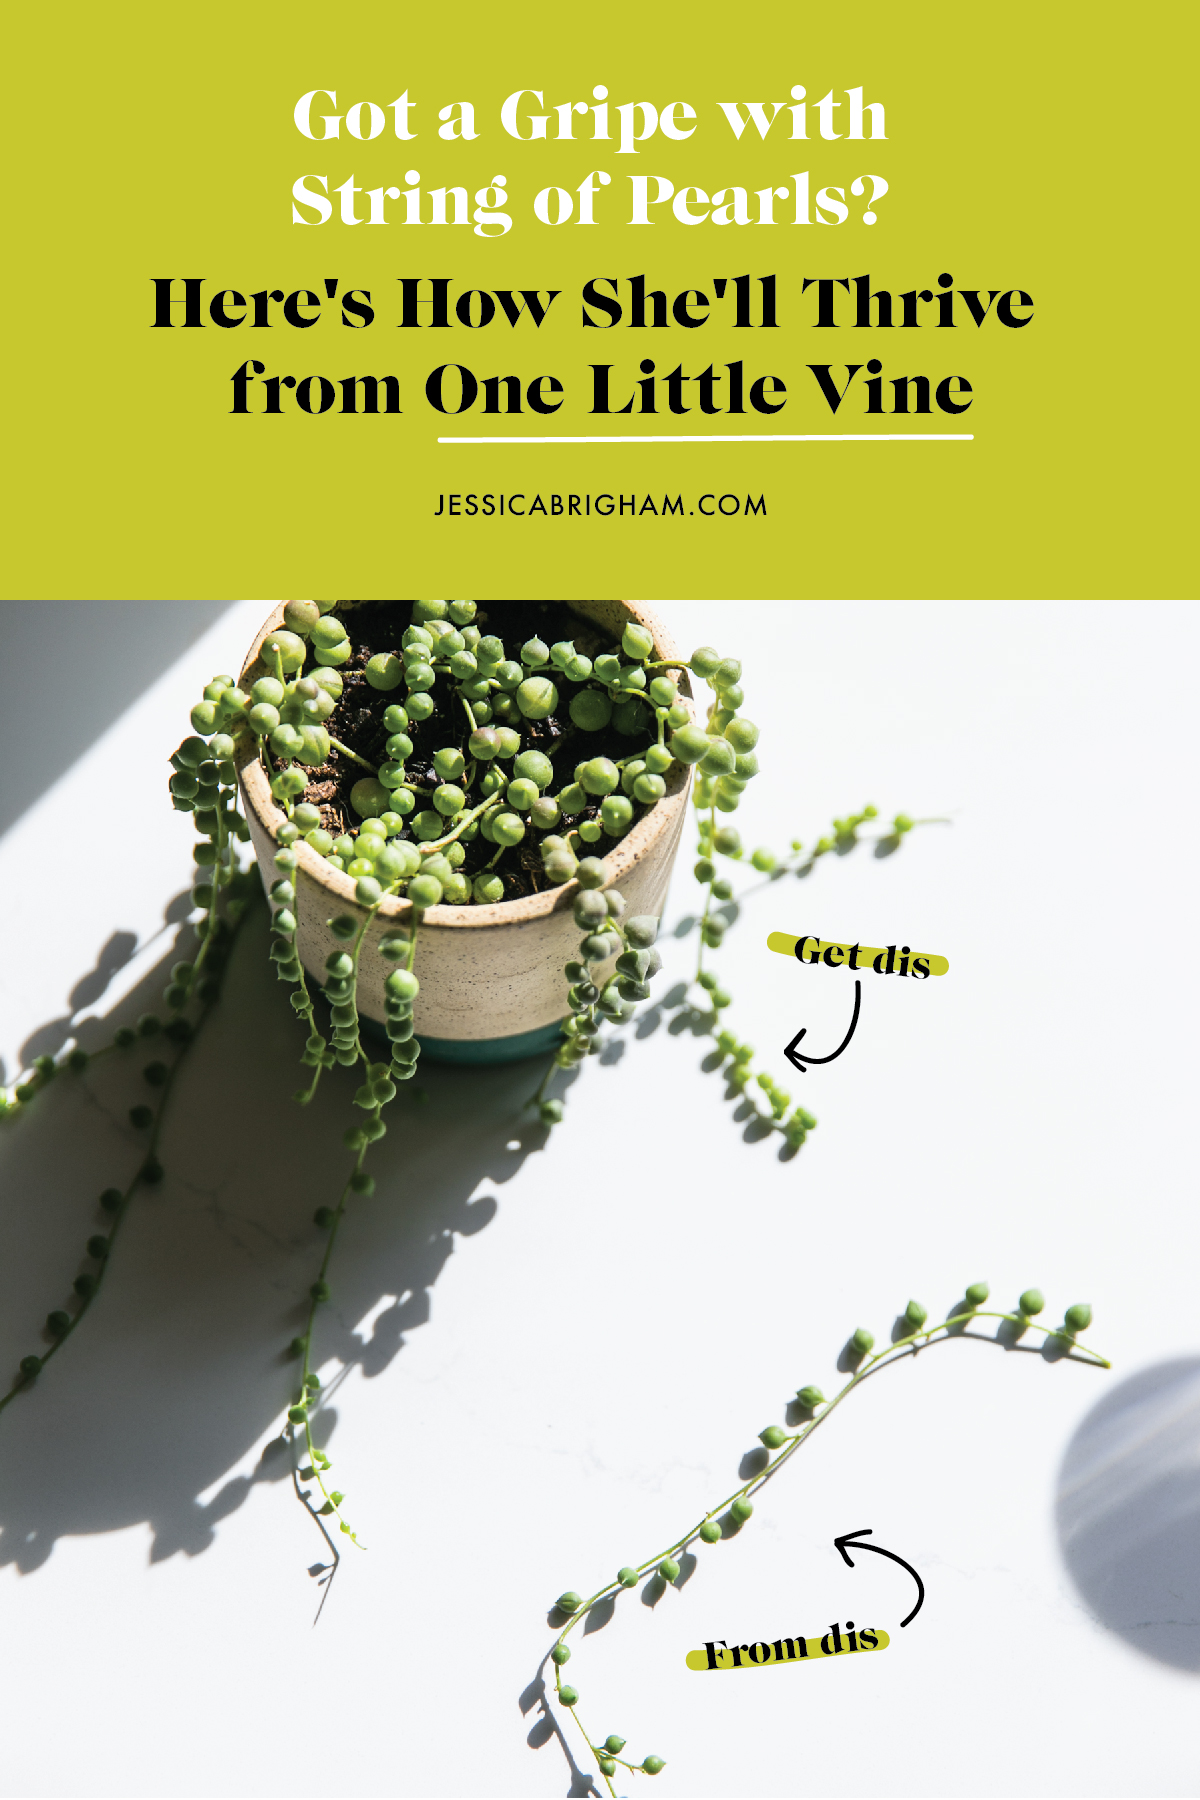 Got a Gripe with String of Pearls? Here's How She'll Thrive from One Little Vine | #PLANTPARDAY | House Plant Care | JessicaBrigham.com